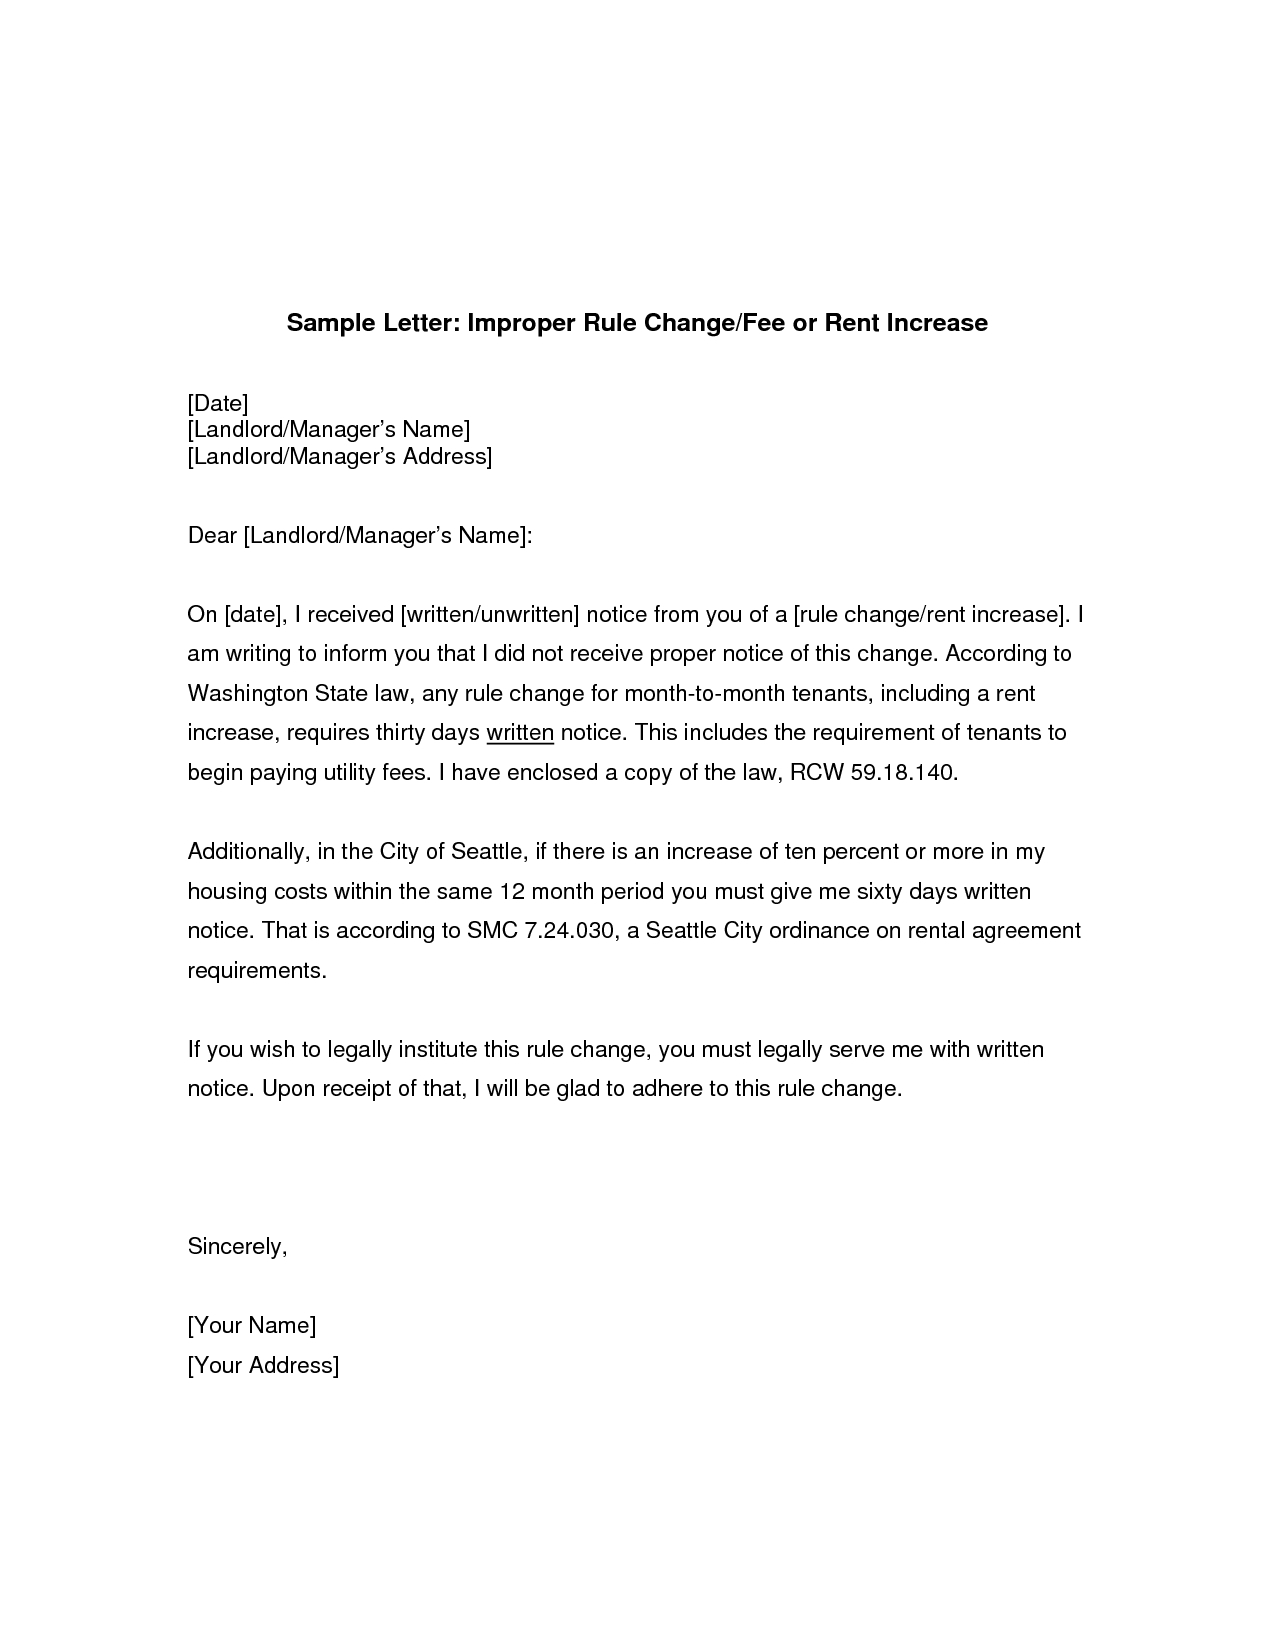 Tenant Guarantor Letter Template - Rent Increase Sample Letter Legal Documents